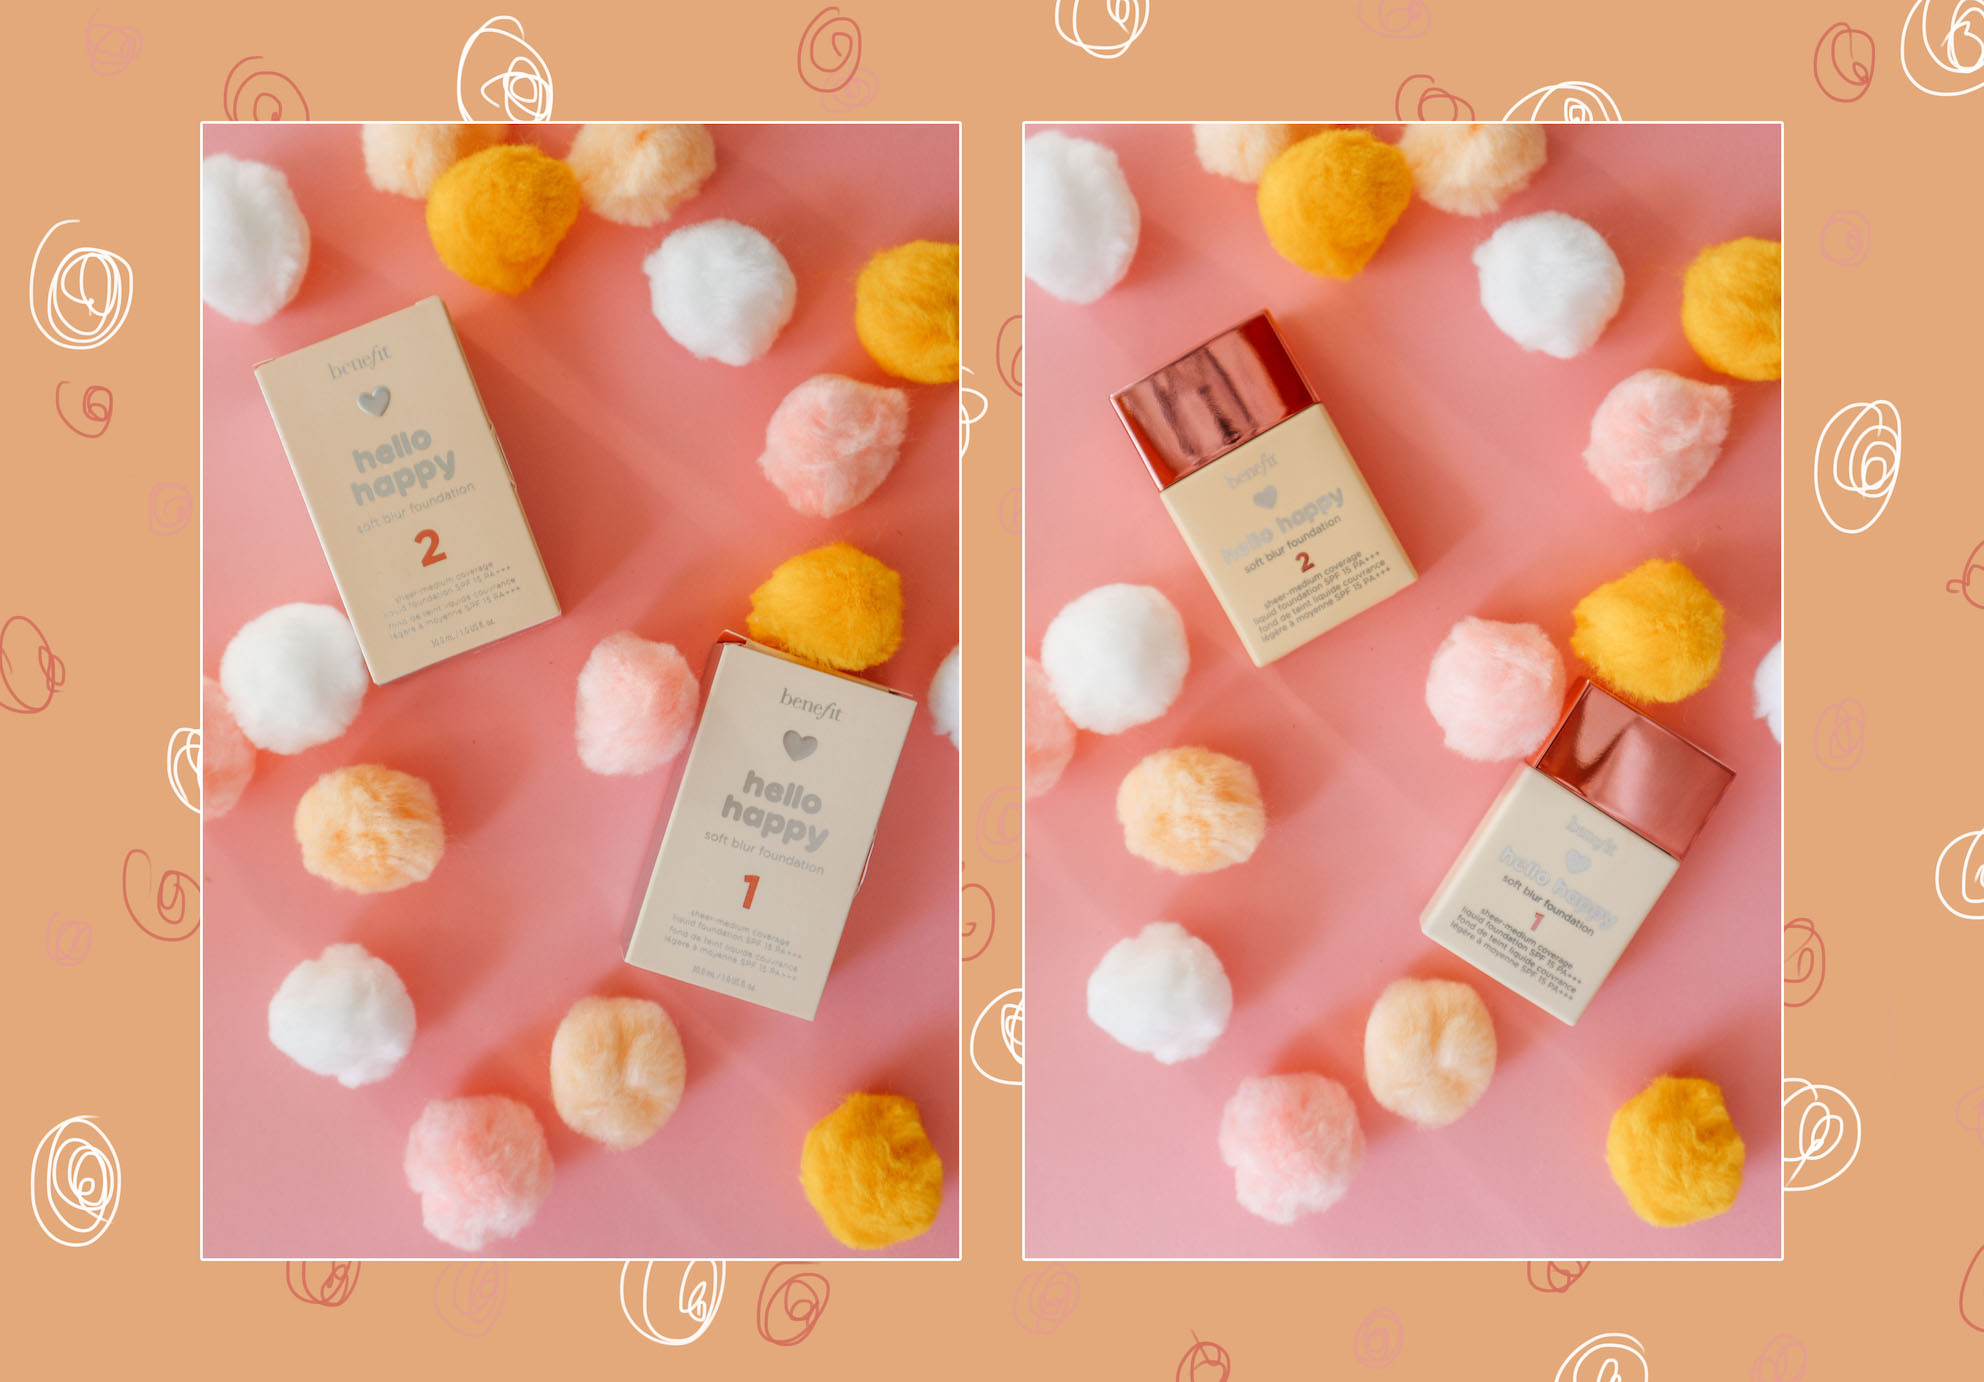 floortjeloves, hello happy teint, the new foundation you need to try, benefit, benefit foundation, hello happy, hello happy foundation, benefit make-up, make-up, foundation, teint